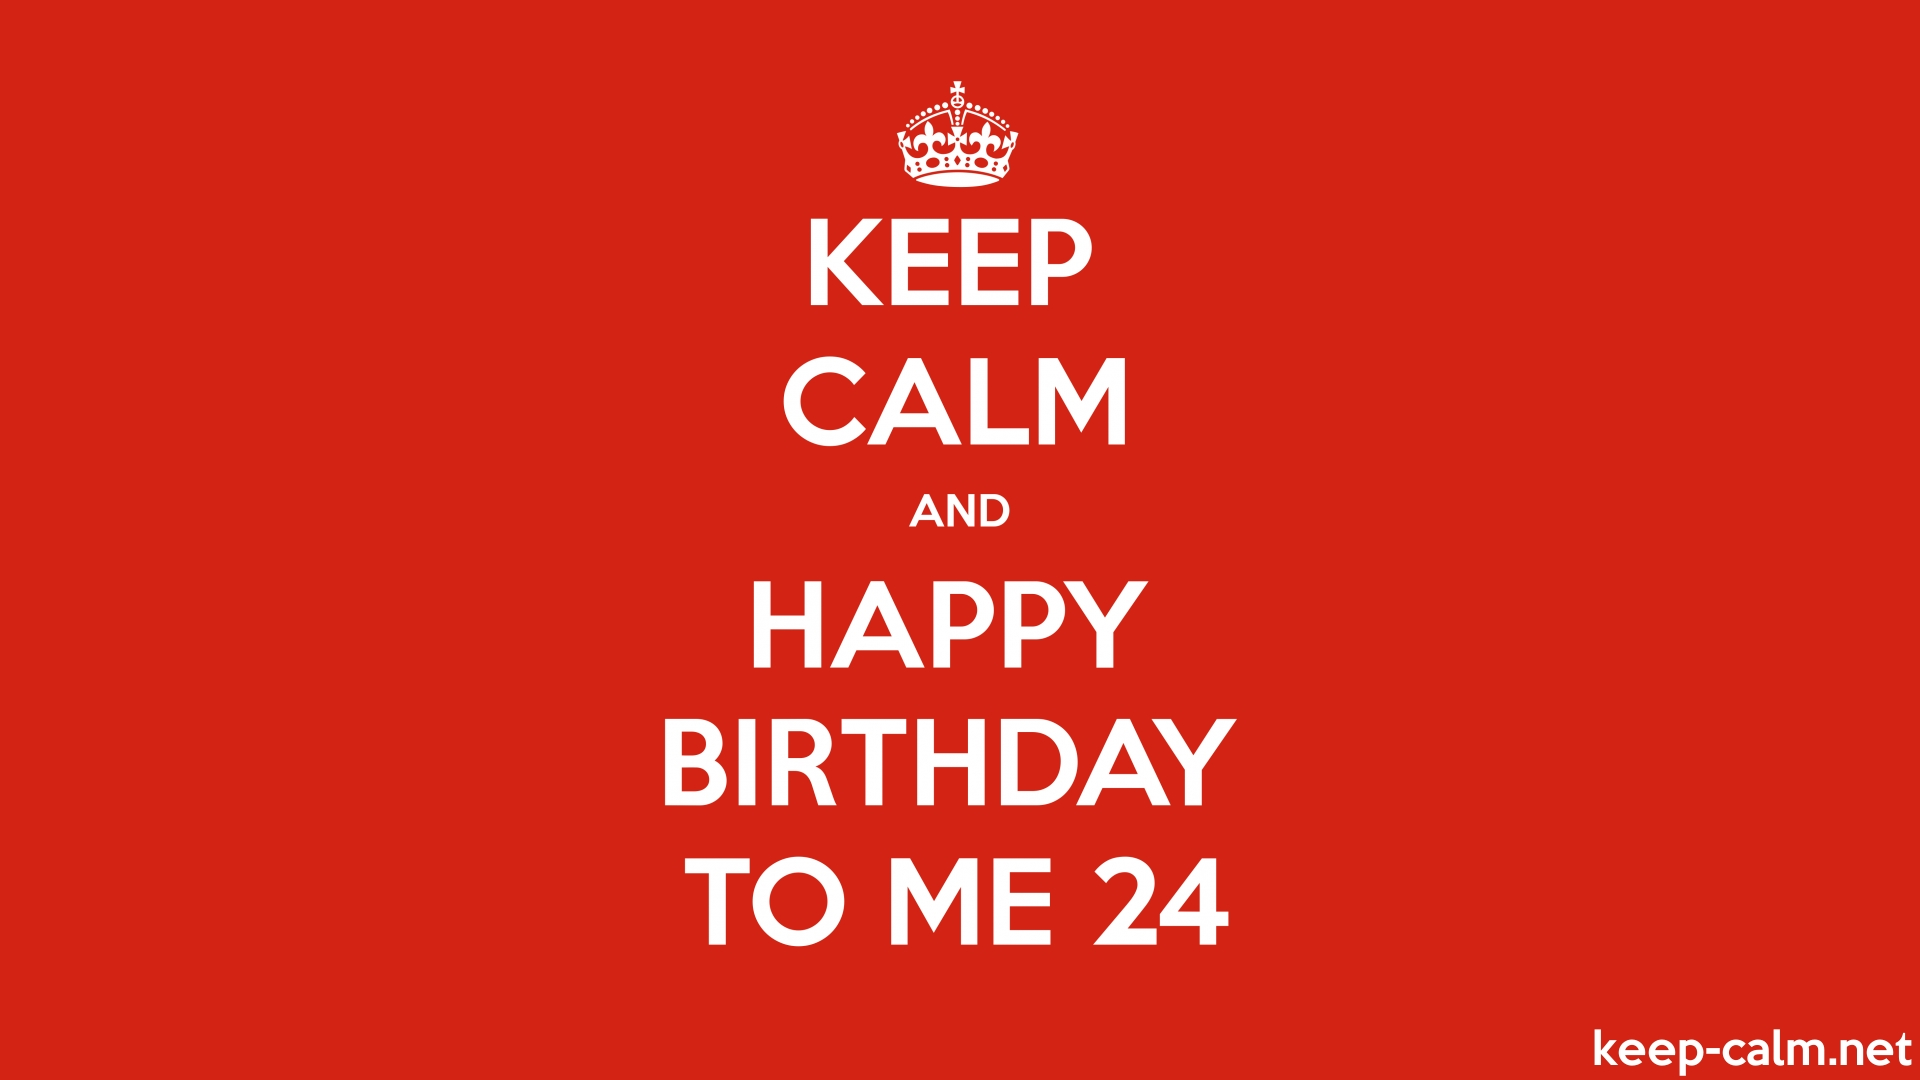 Keep Calm And Happy Birthday To Me 24 Keep Calm Net